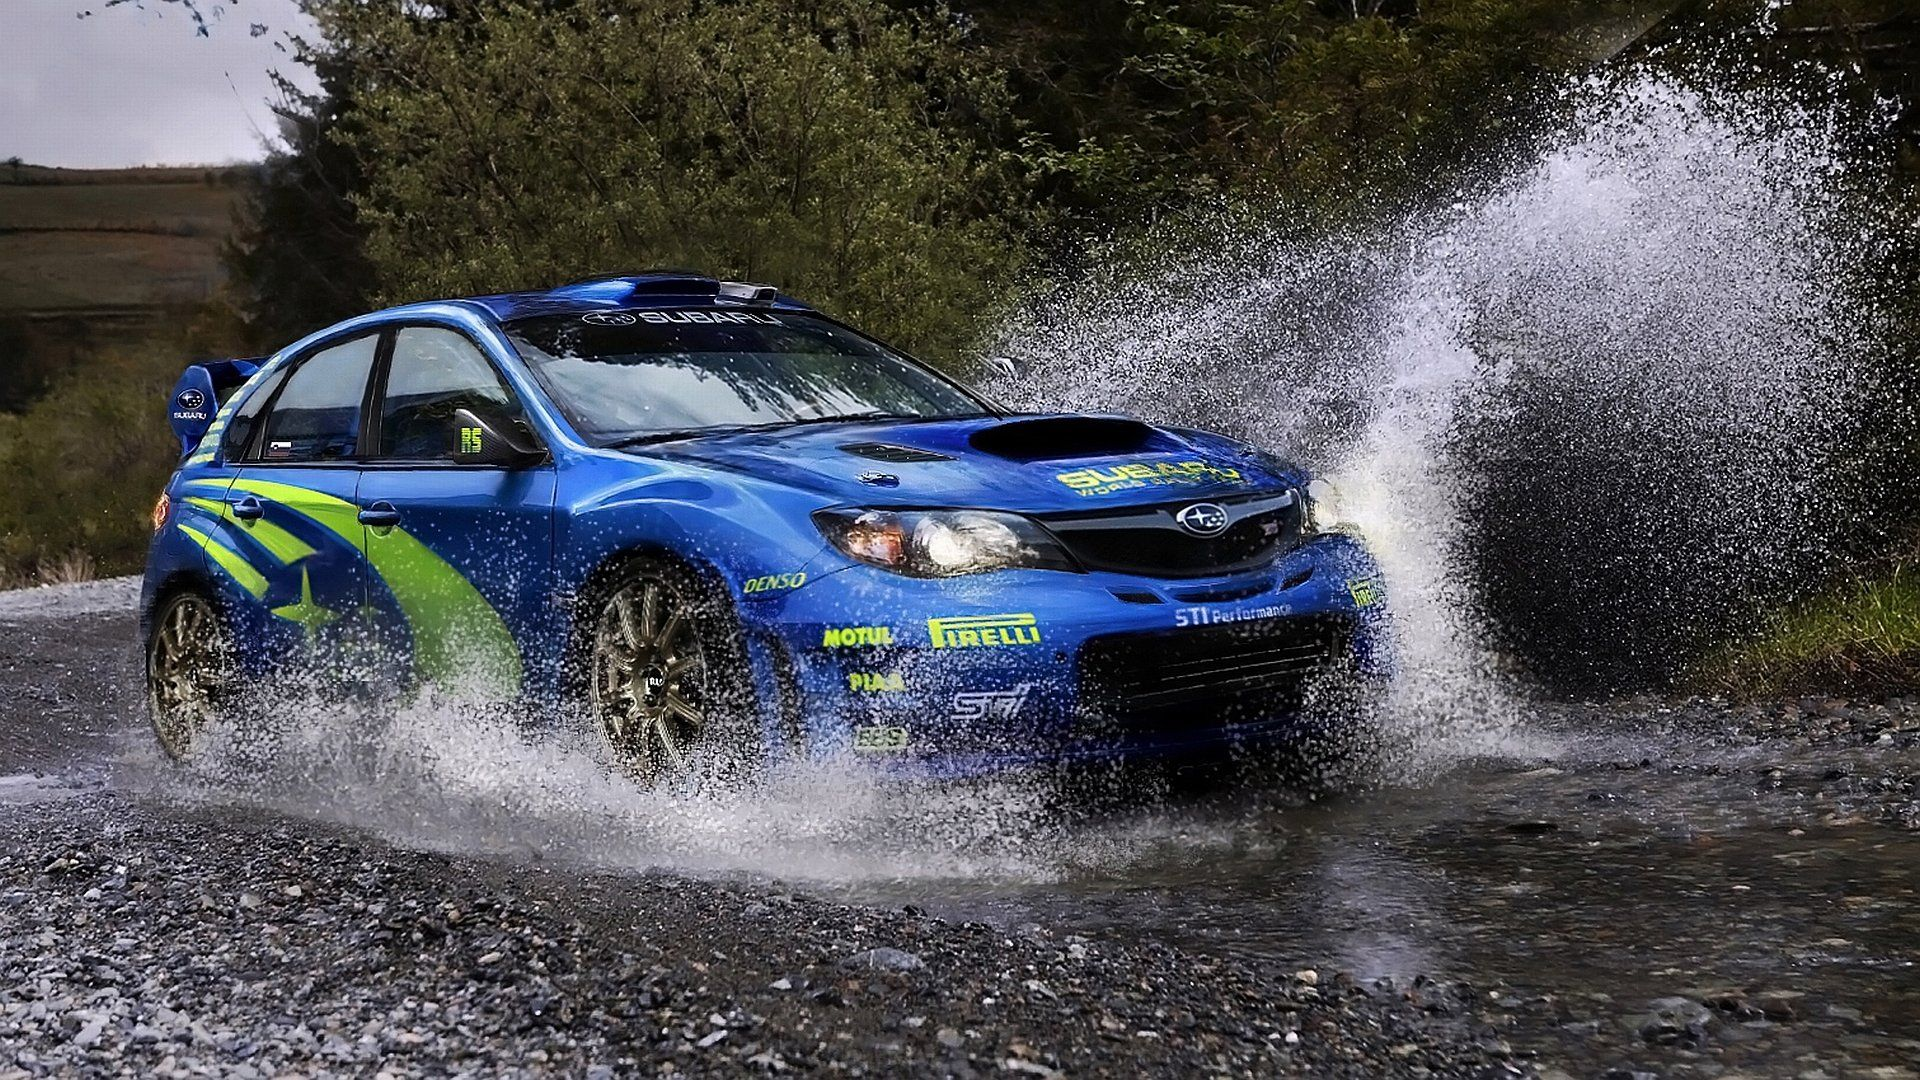 Wrx Rally Wallpapers Top Free Wrx Rally Backgrounds Wallpaperaccess